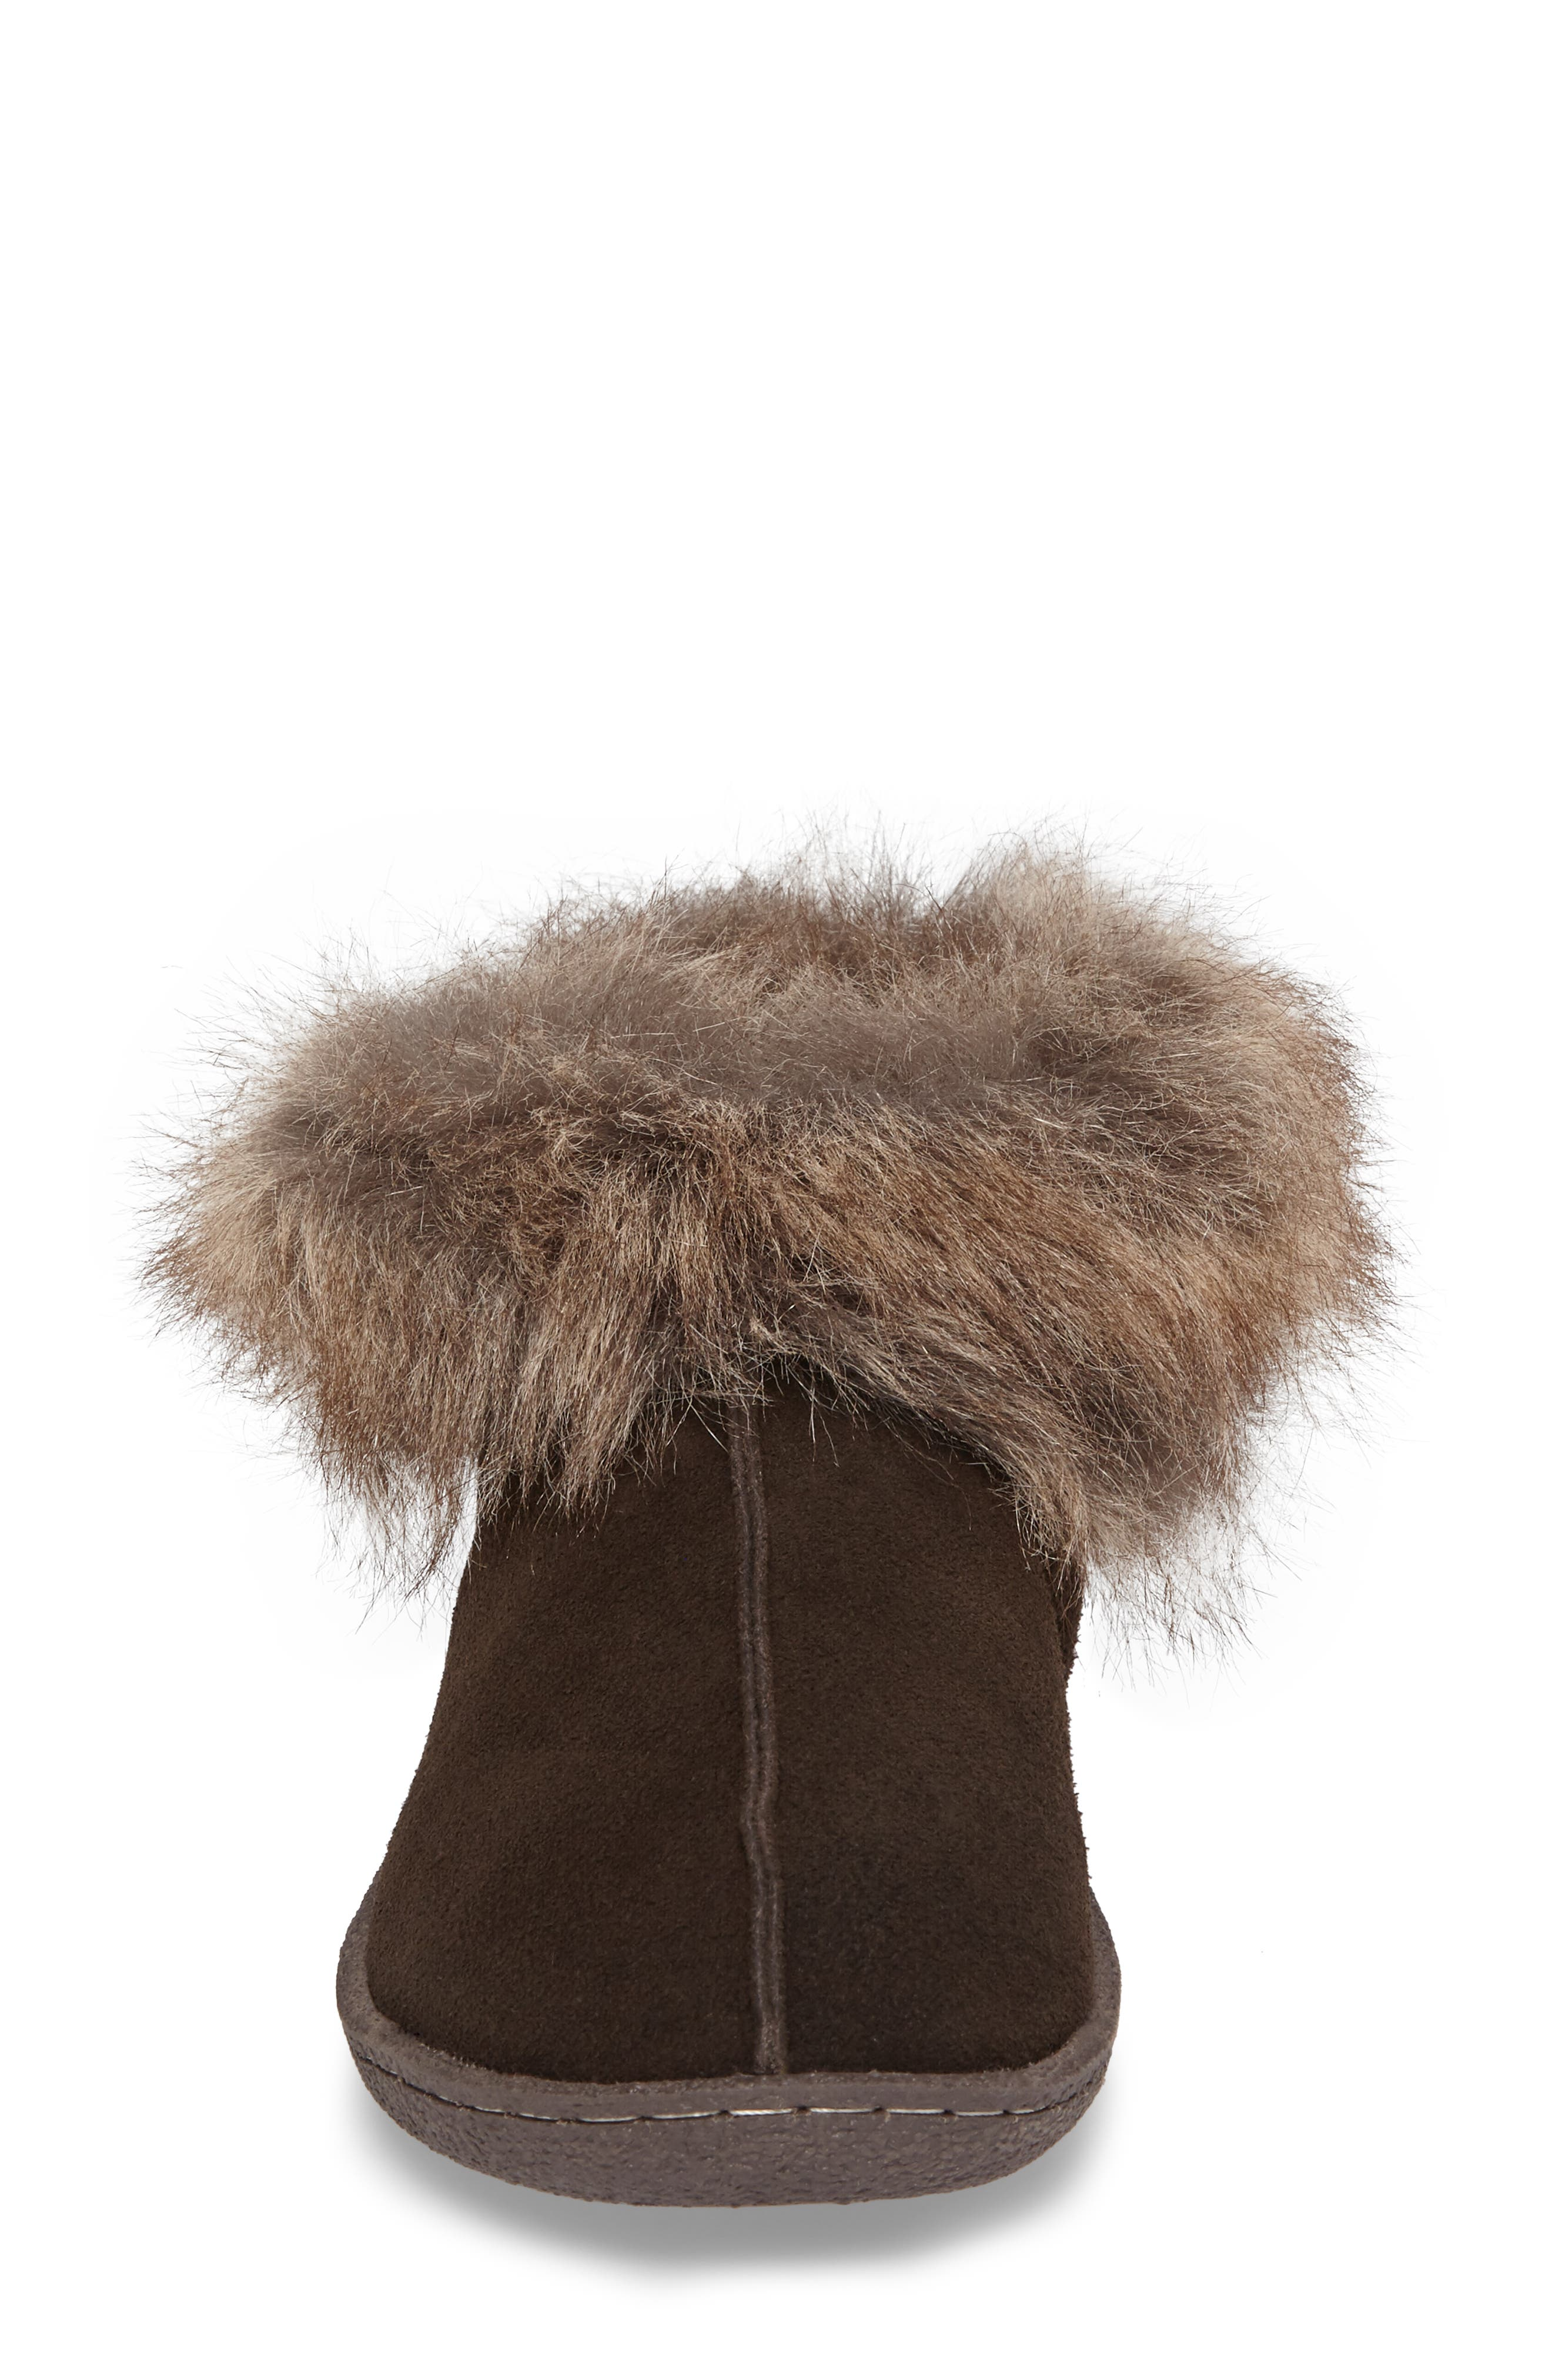 Autumn Ridge II Faux Fur Slipper Bootie,                             Alternate thumbnail 7, color,